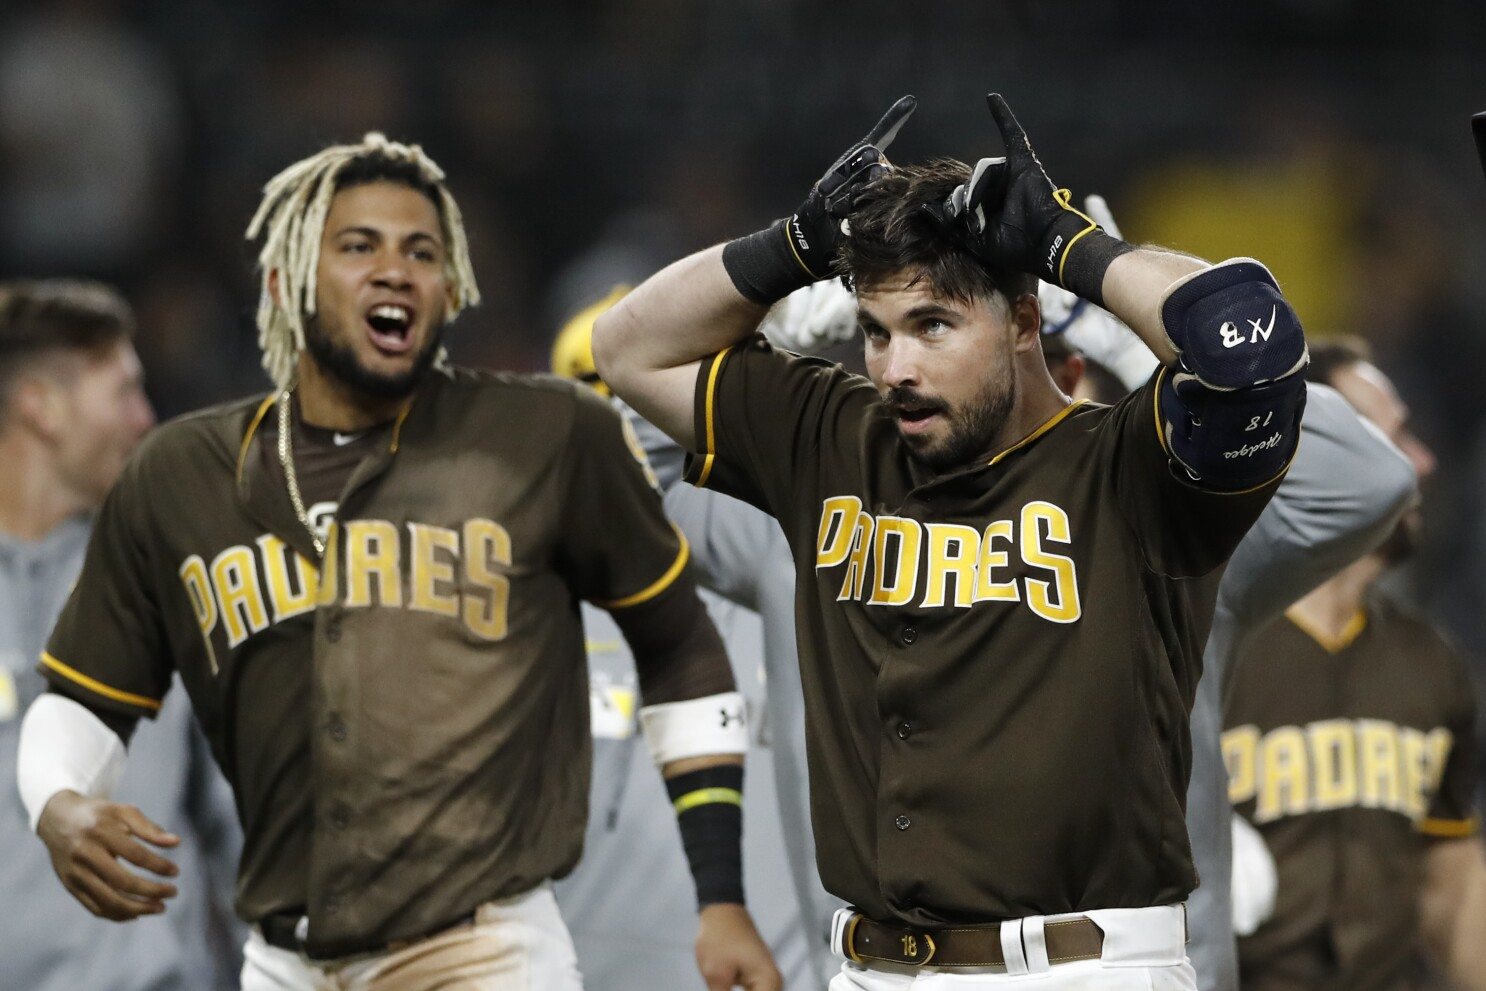 Padres looking for more offense from catchers, whoever they end up being